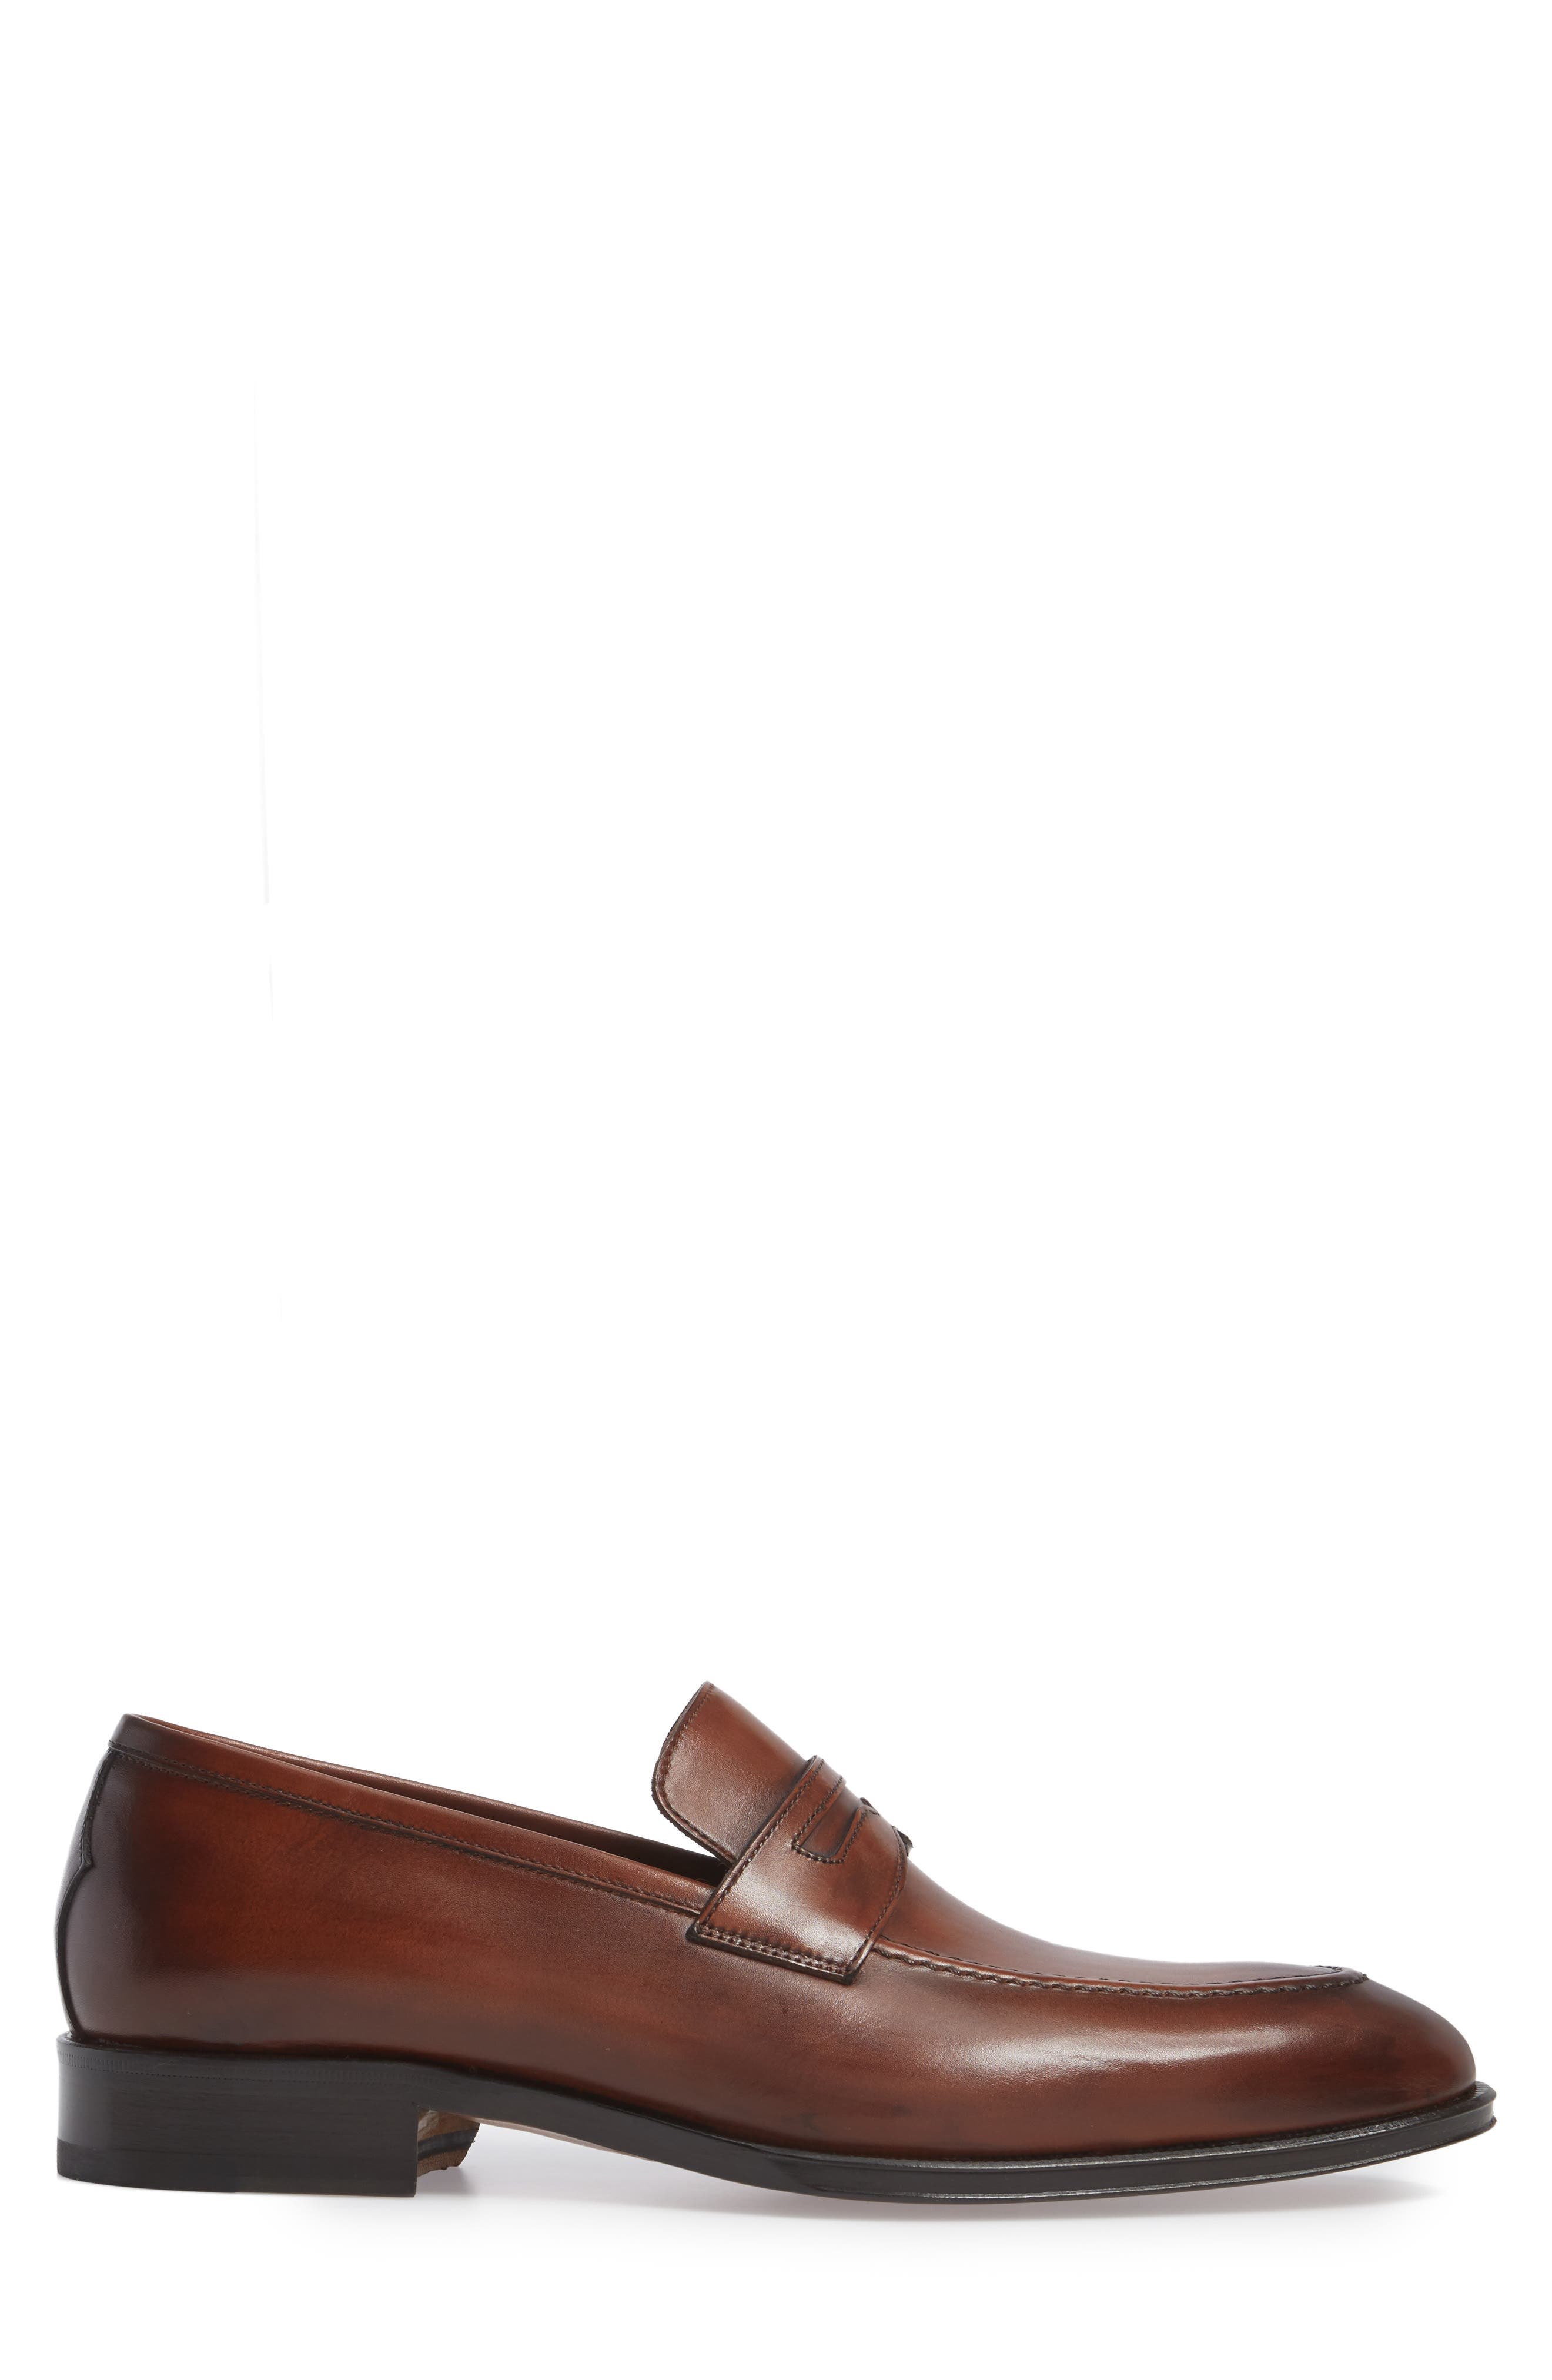 Penny Loafer,                             Alternate thumbnail 3, color,                             Marble Brown